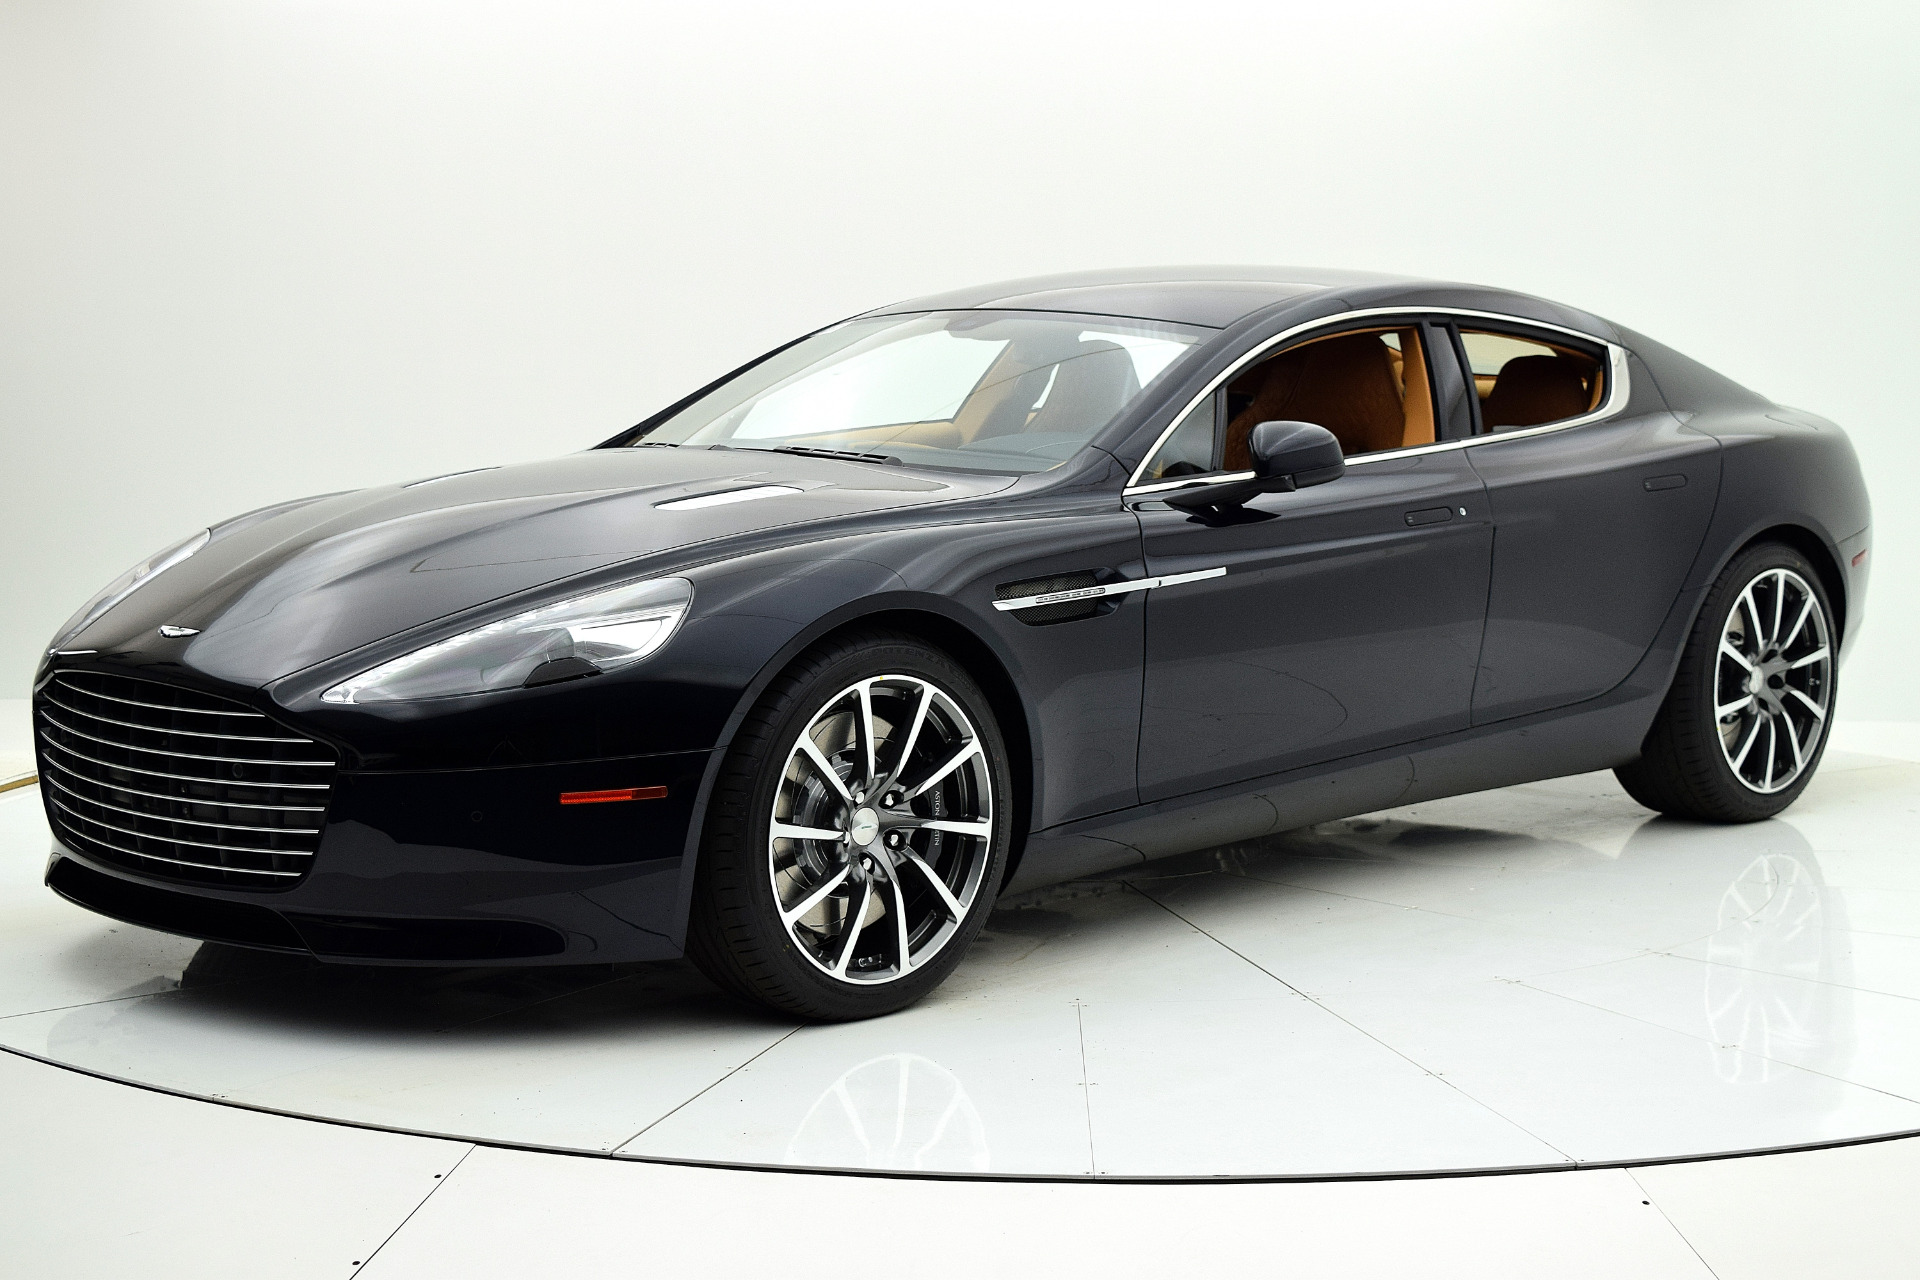 New 2017 Aston Martin Rapide S Shadow Edition For Sale 210 676 F C Kerbeck Aston Martin Stock 17a119